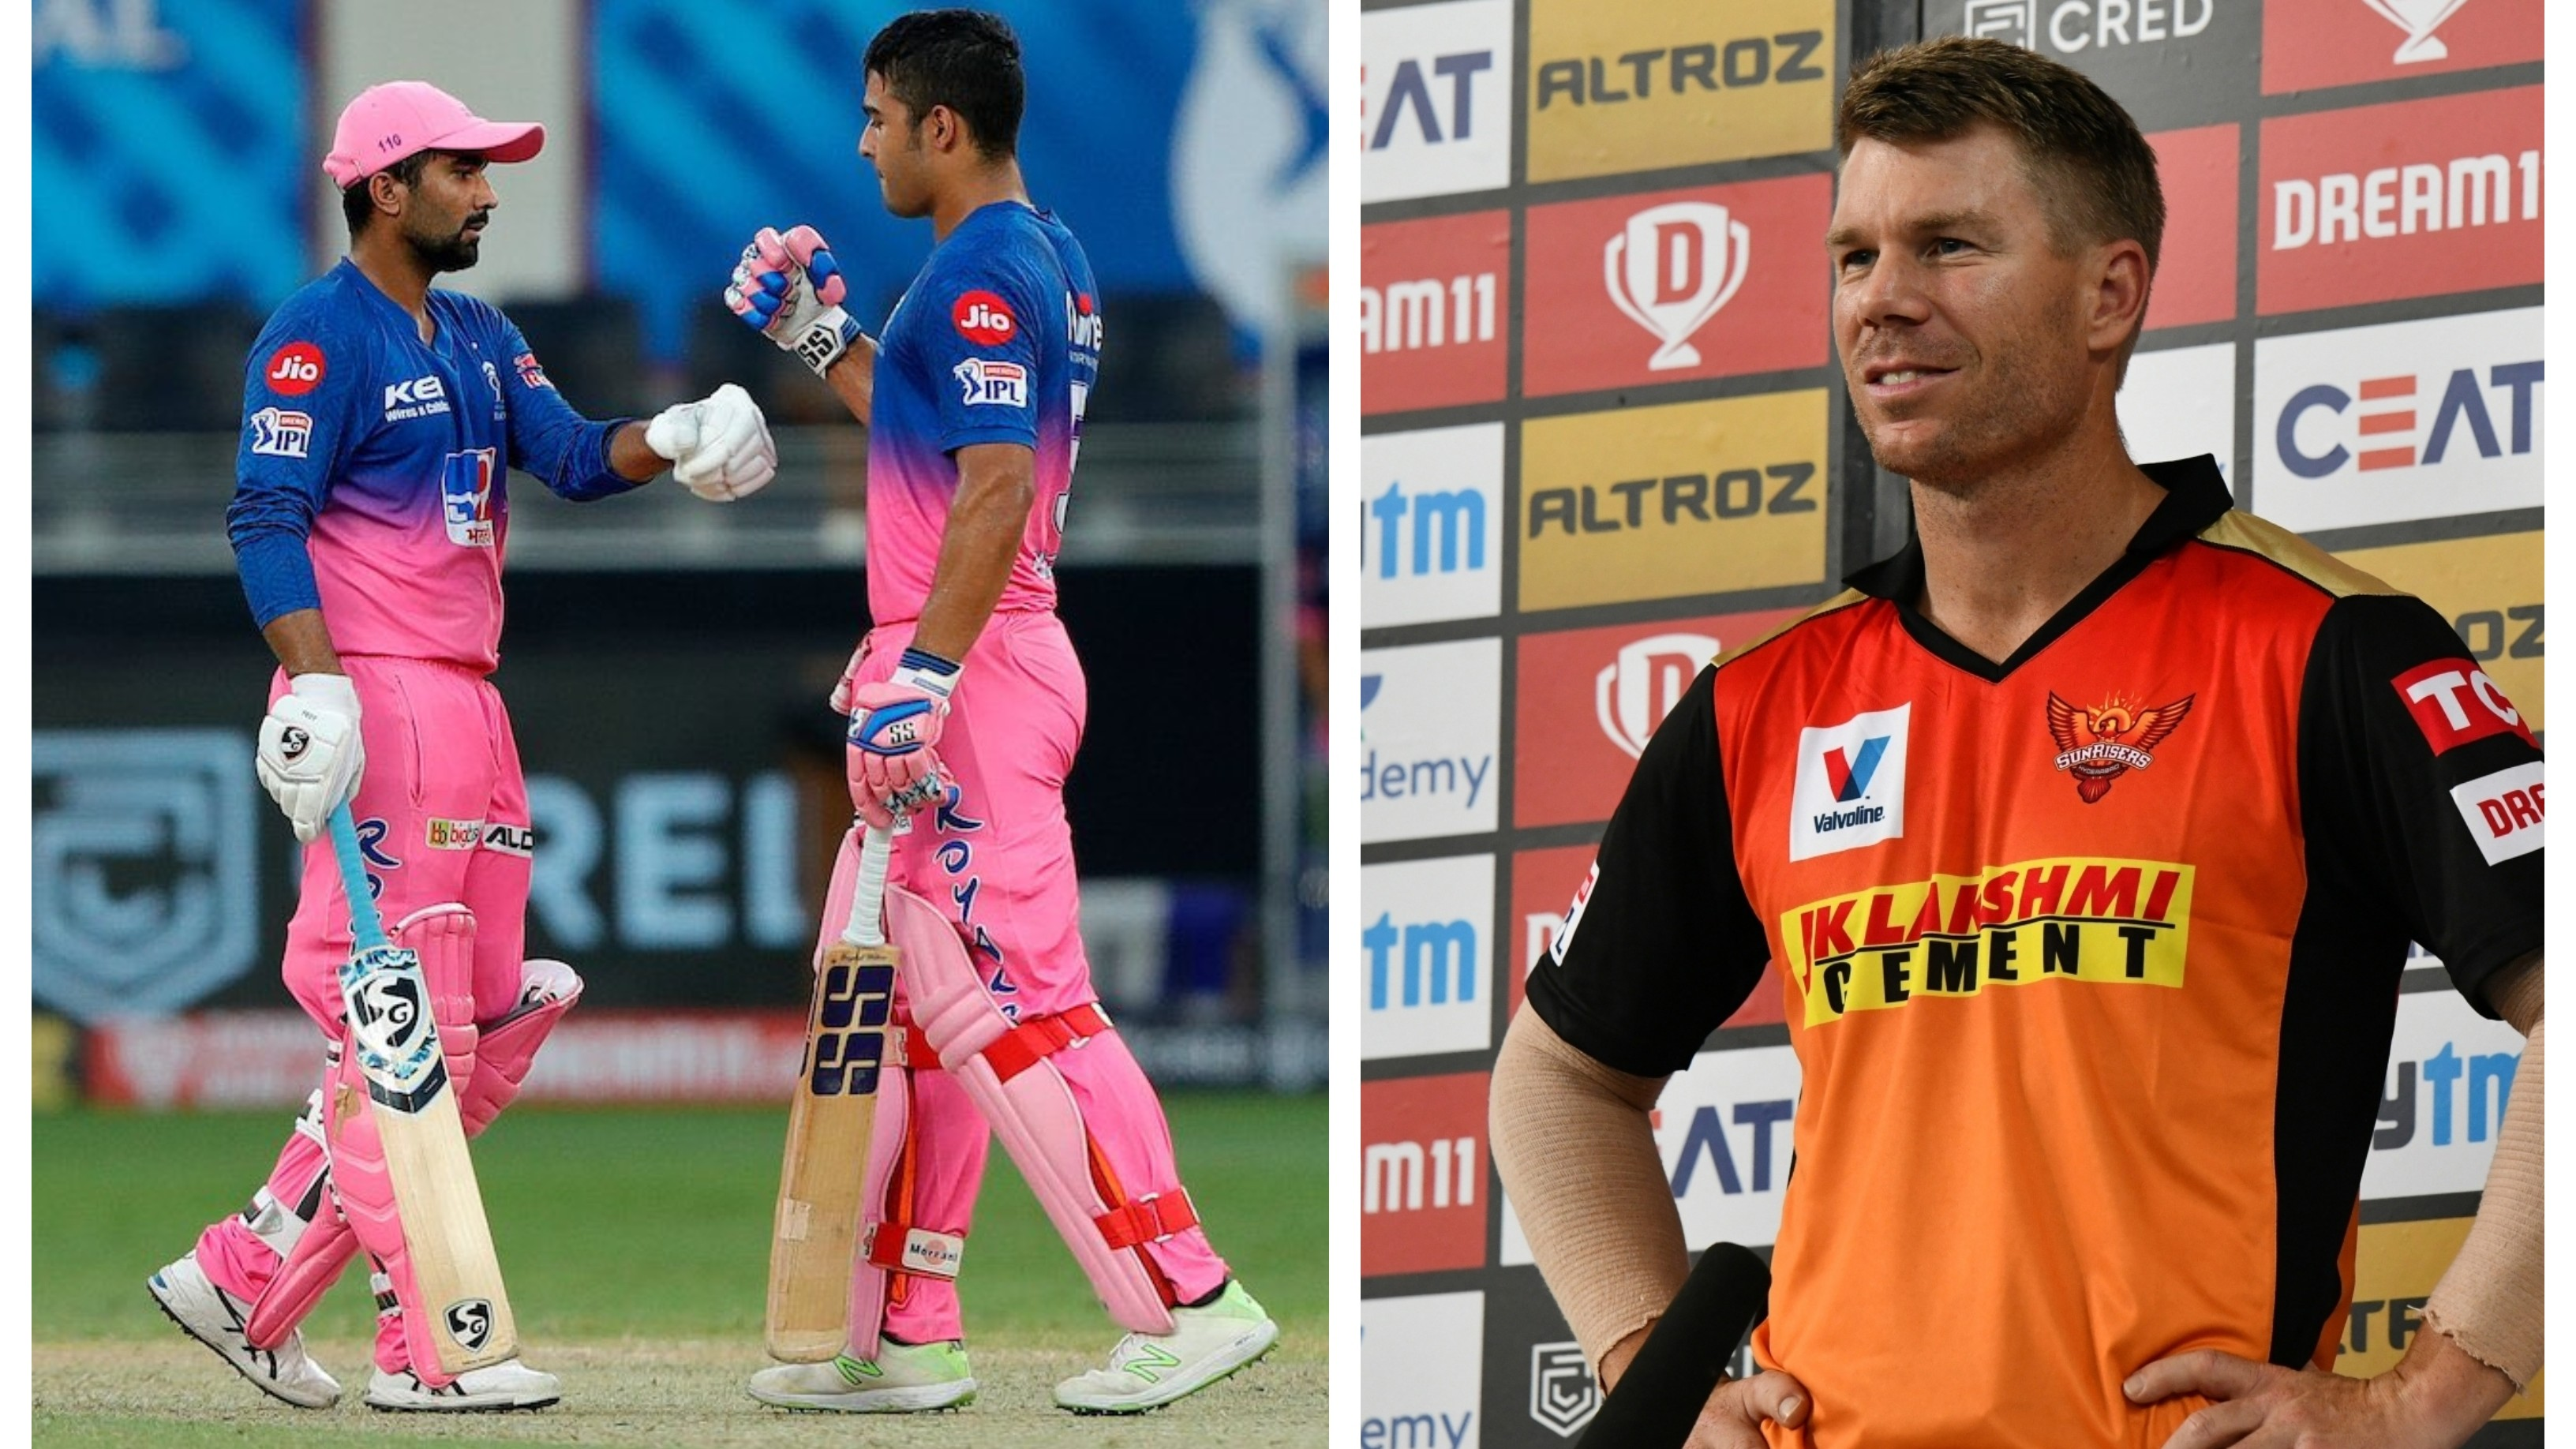 IPL 2020: Warner praises Tewatia and Parag for taking RR over the line while chasing SRH's 158